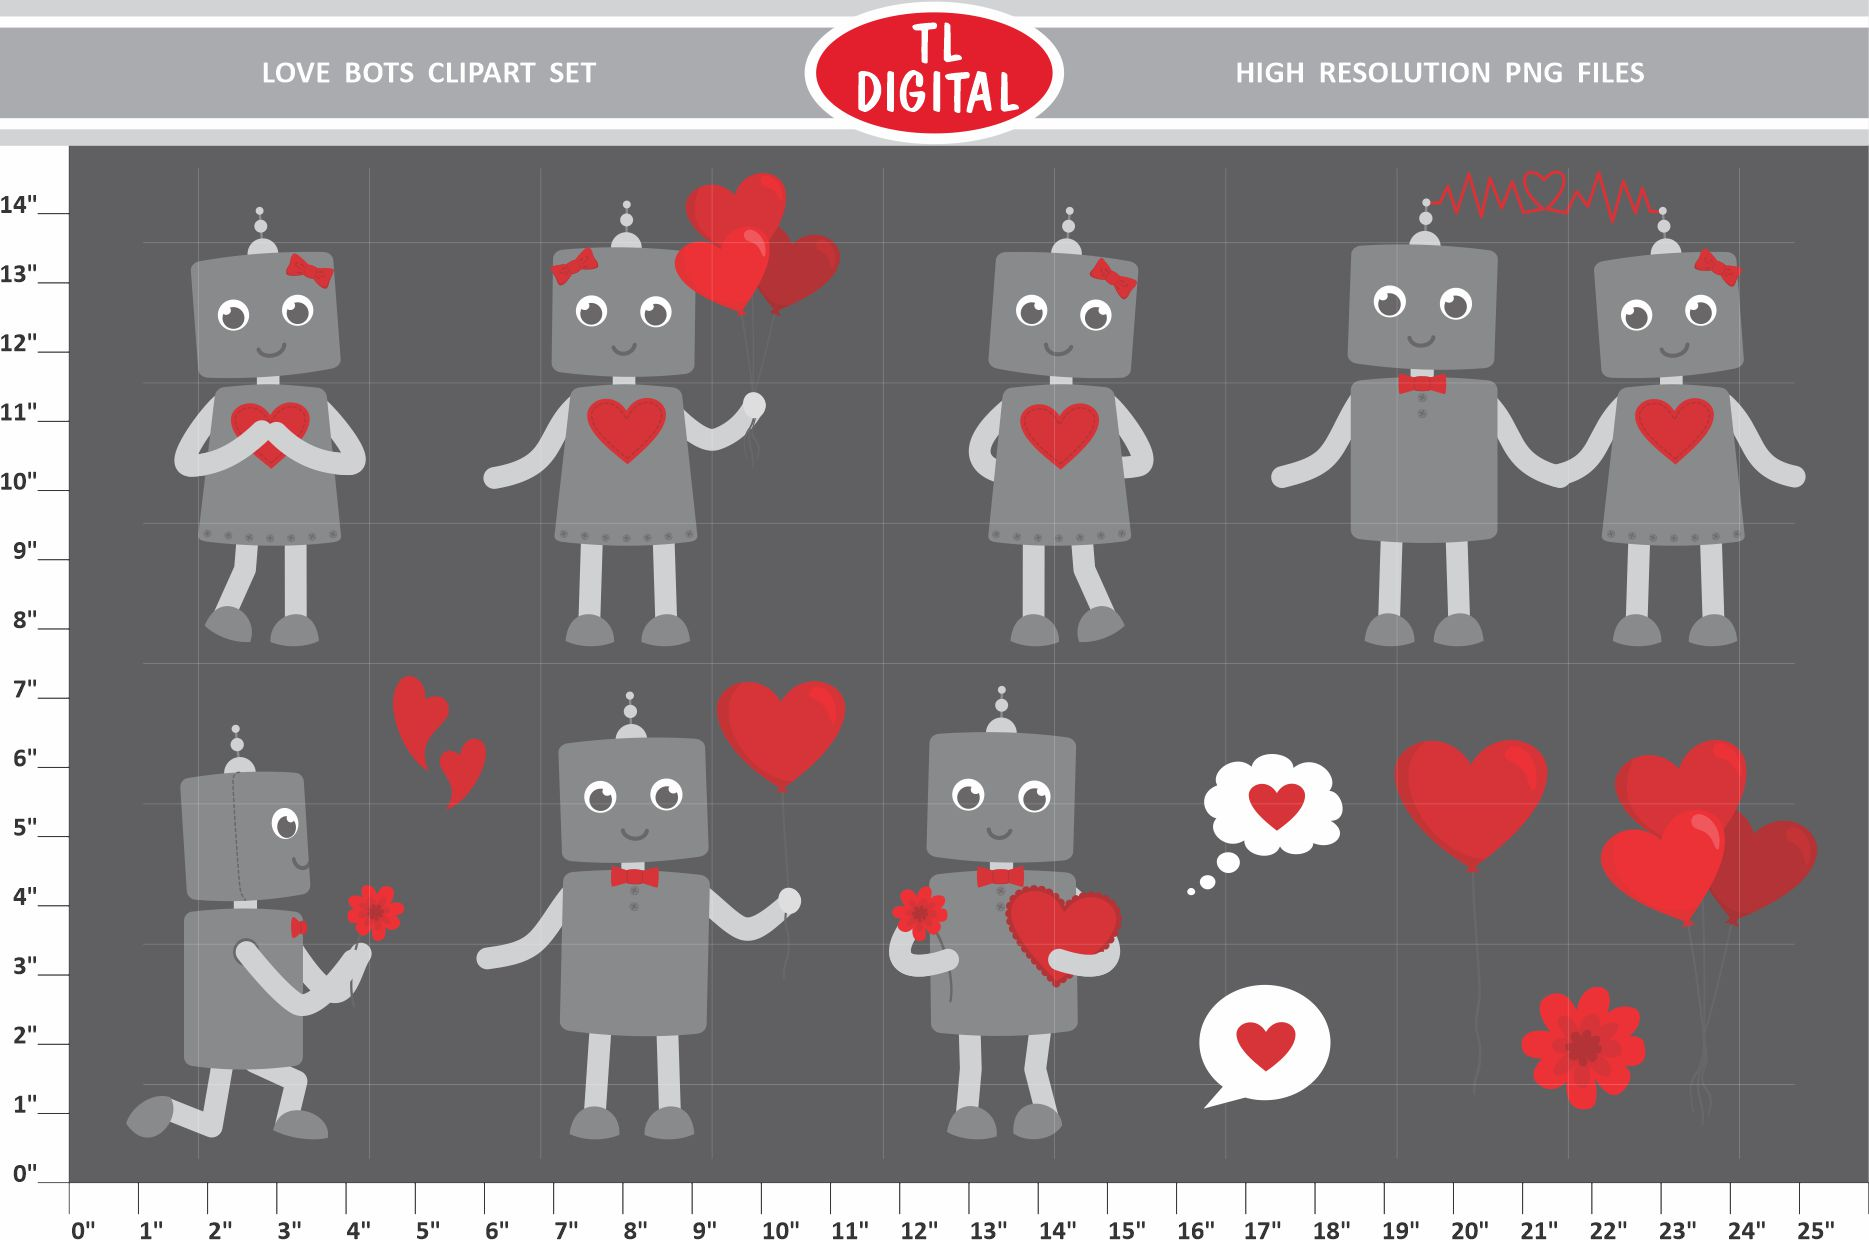 Love Robots Valentines Clipart Set Graphic By Tl Digital Creative Fabrica